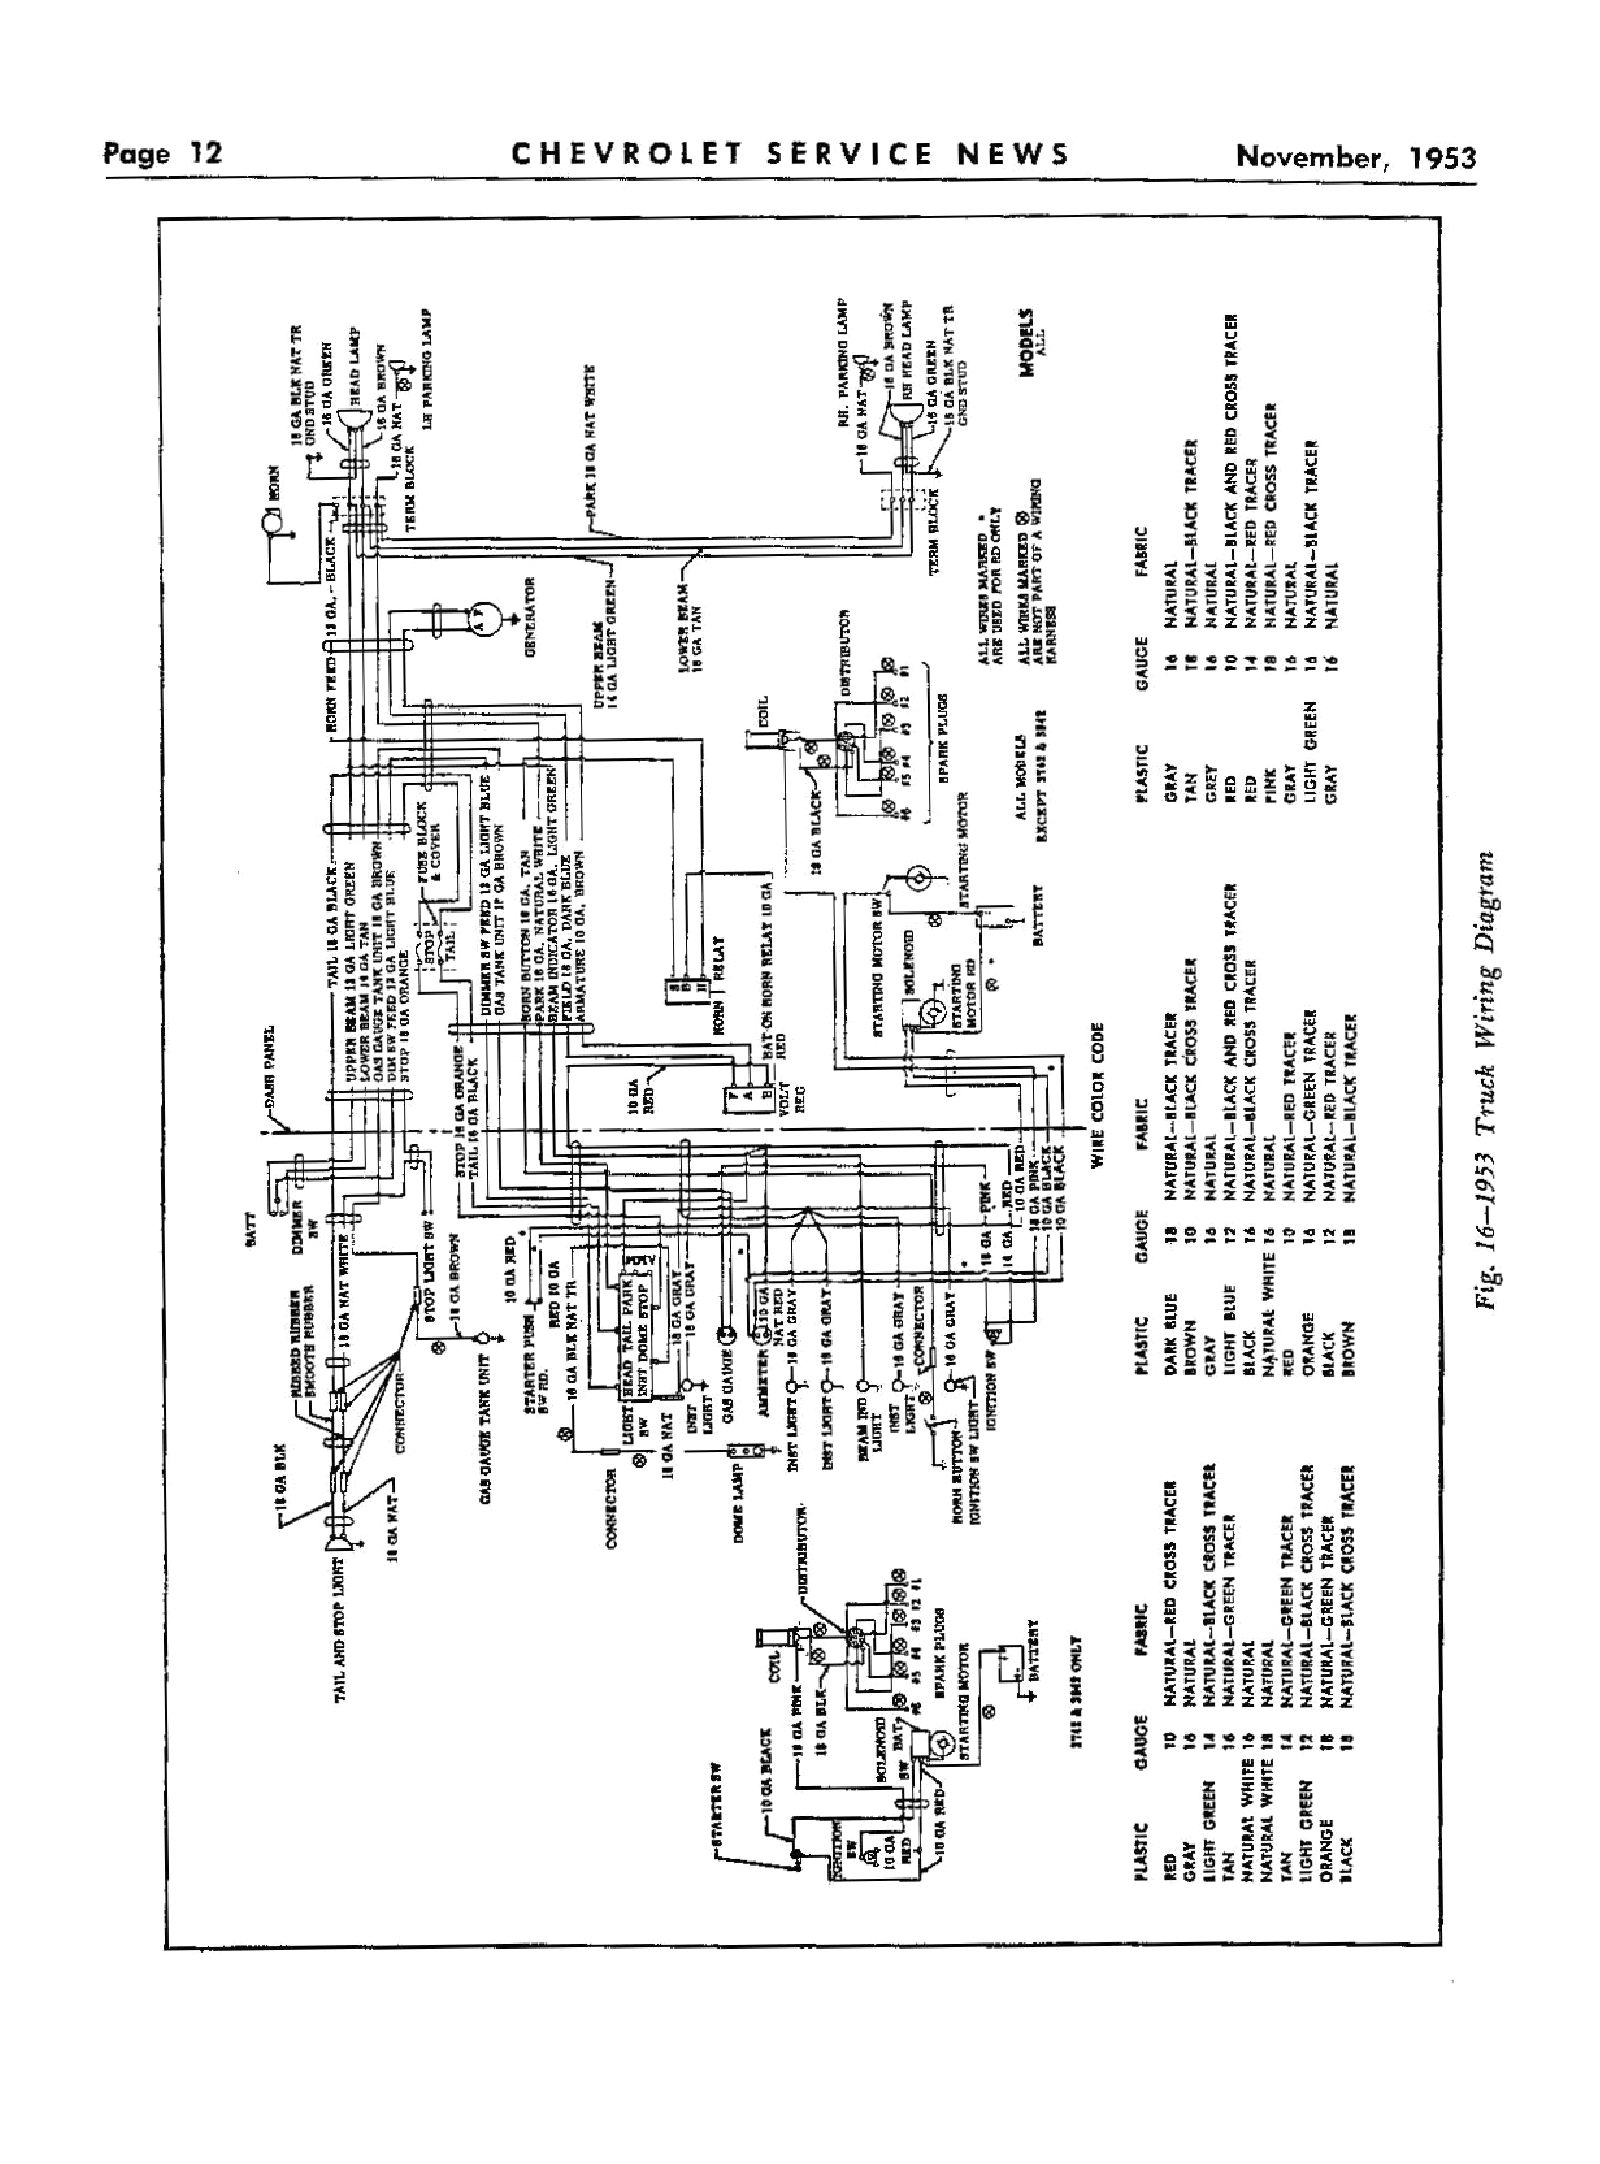 1933 Chevrolet Wiring Diagram Library Rco810 1953 Truck